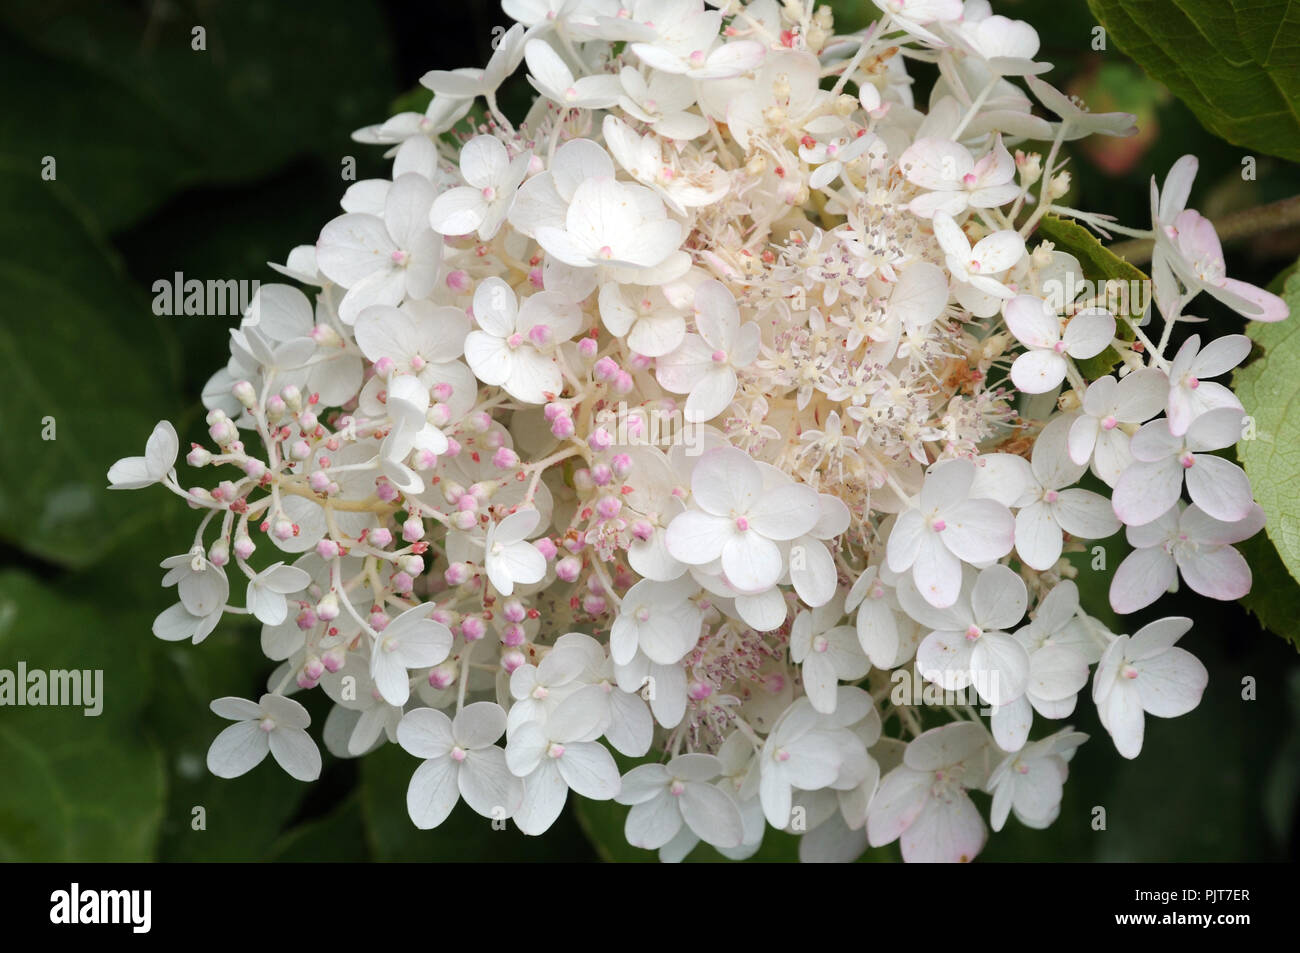 creamy white fertile flowers and pinkish sterile florets of a panicled hydrangea - Stock Image